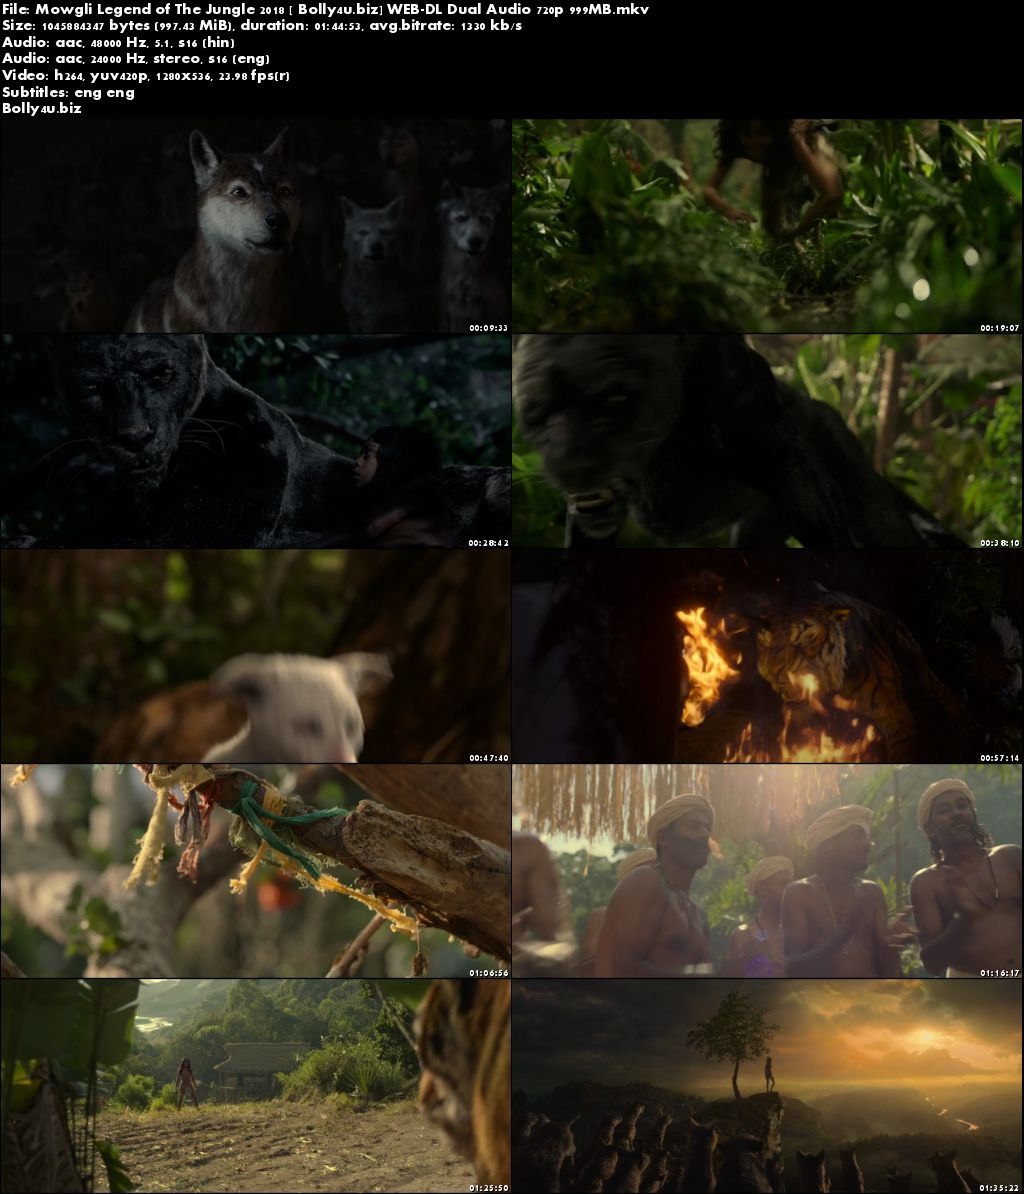 Mowgli Legend of The Jungle 2018 WEB-DL 999Mb Hindi Dual Audio 720p Download